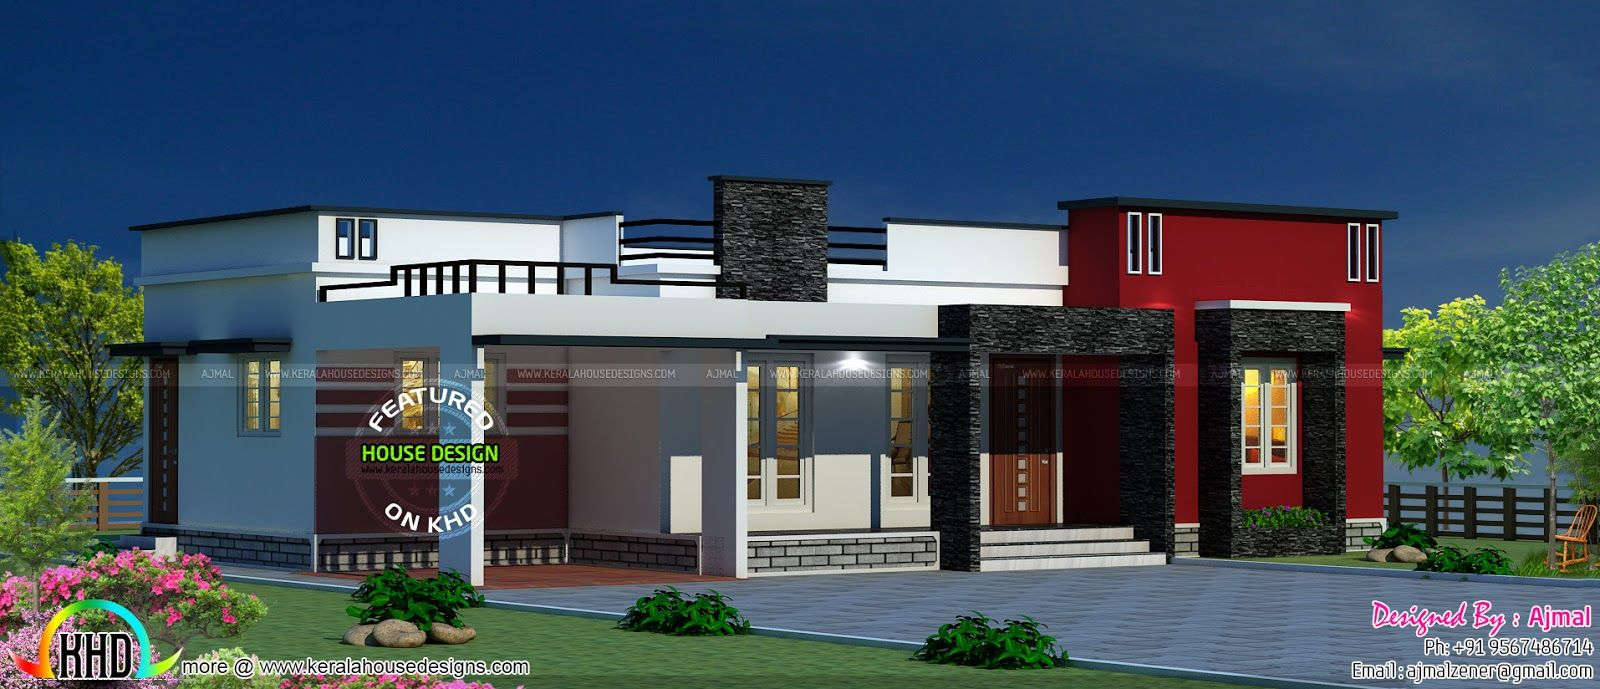 House design under 20 lakhs - Rs 20 Lakhs Cost Home Jpg 1600 689